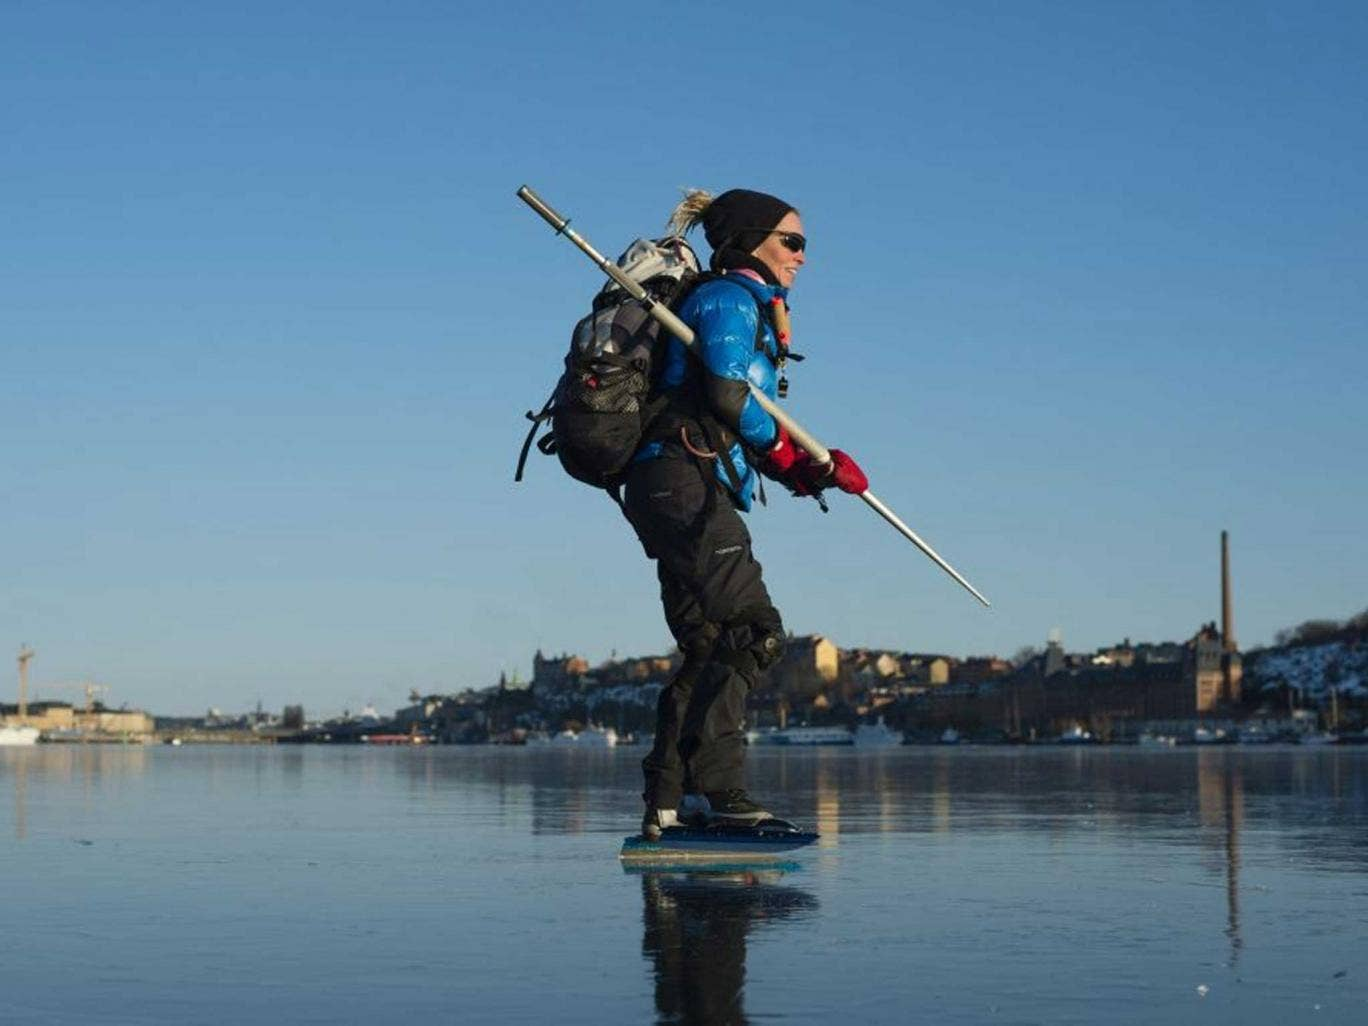 Walk on water: Ice skating on a frozen bay off Sweden's coast